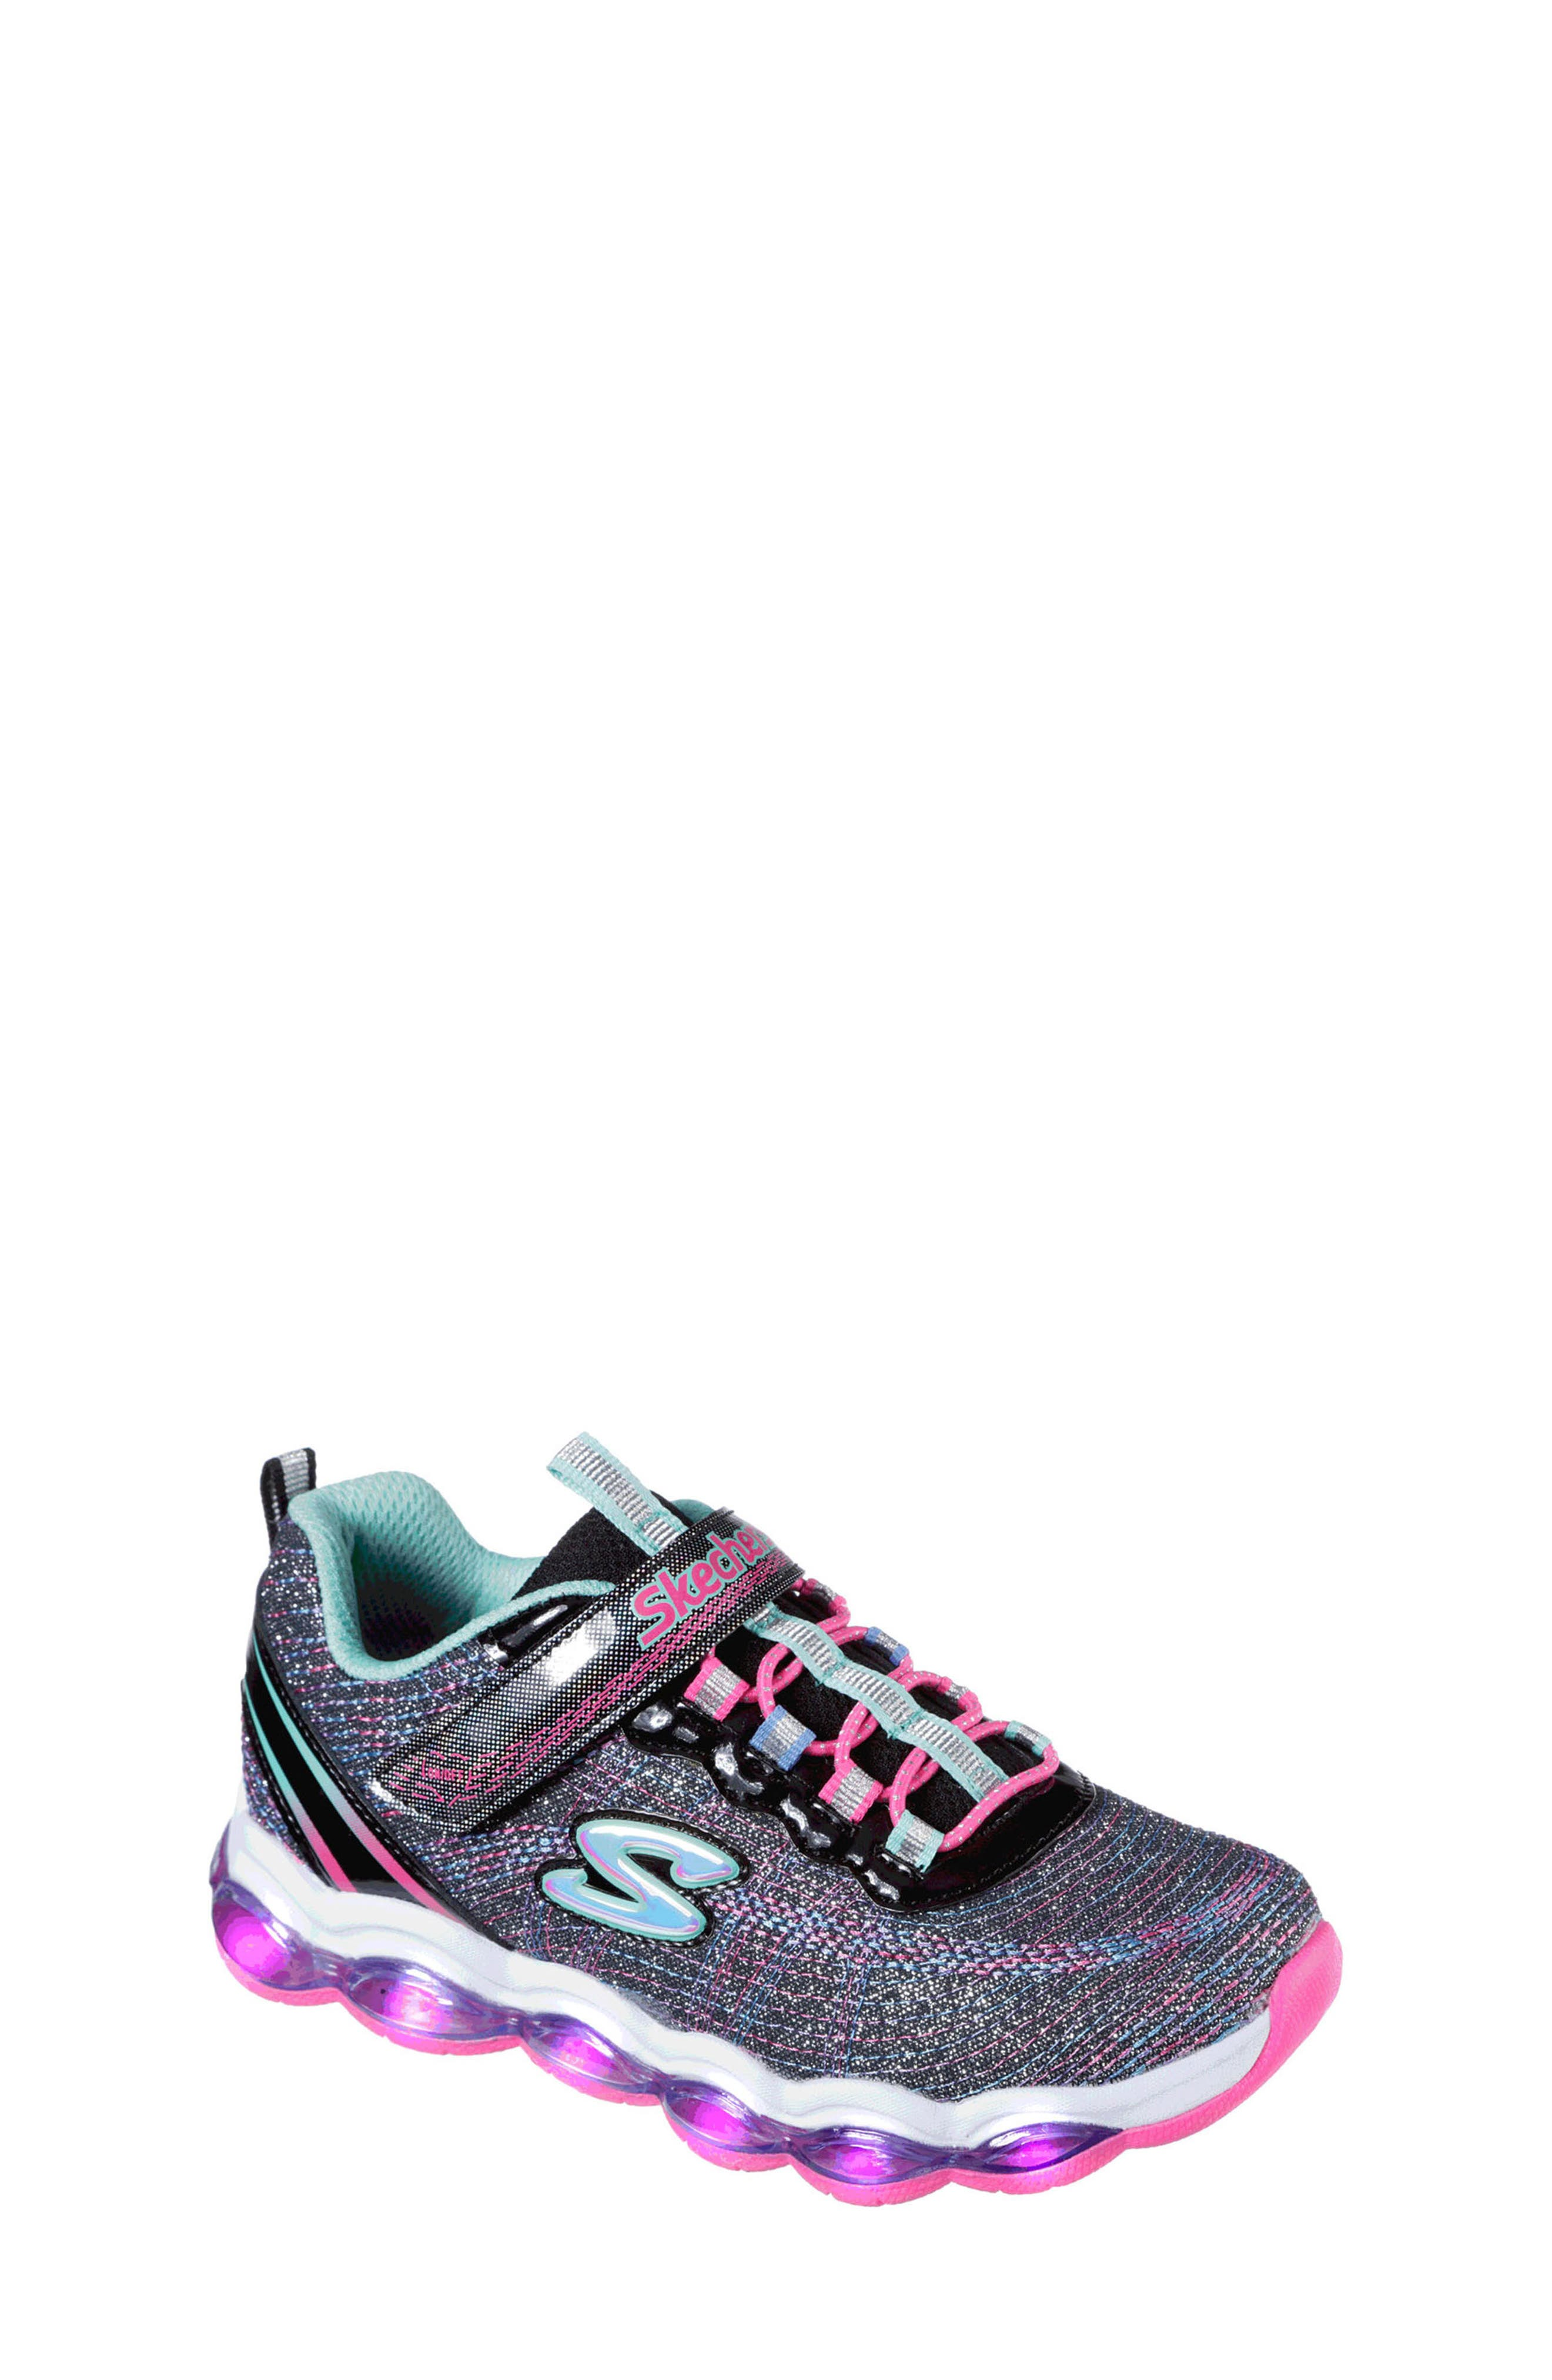 Glimmer Lights Sneakers,                             Alternate thumbnail 7, color,                             001